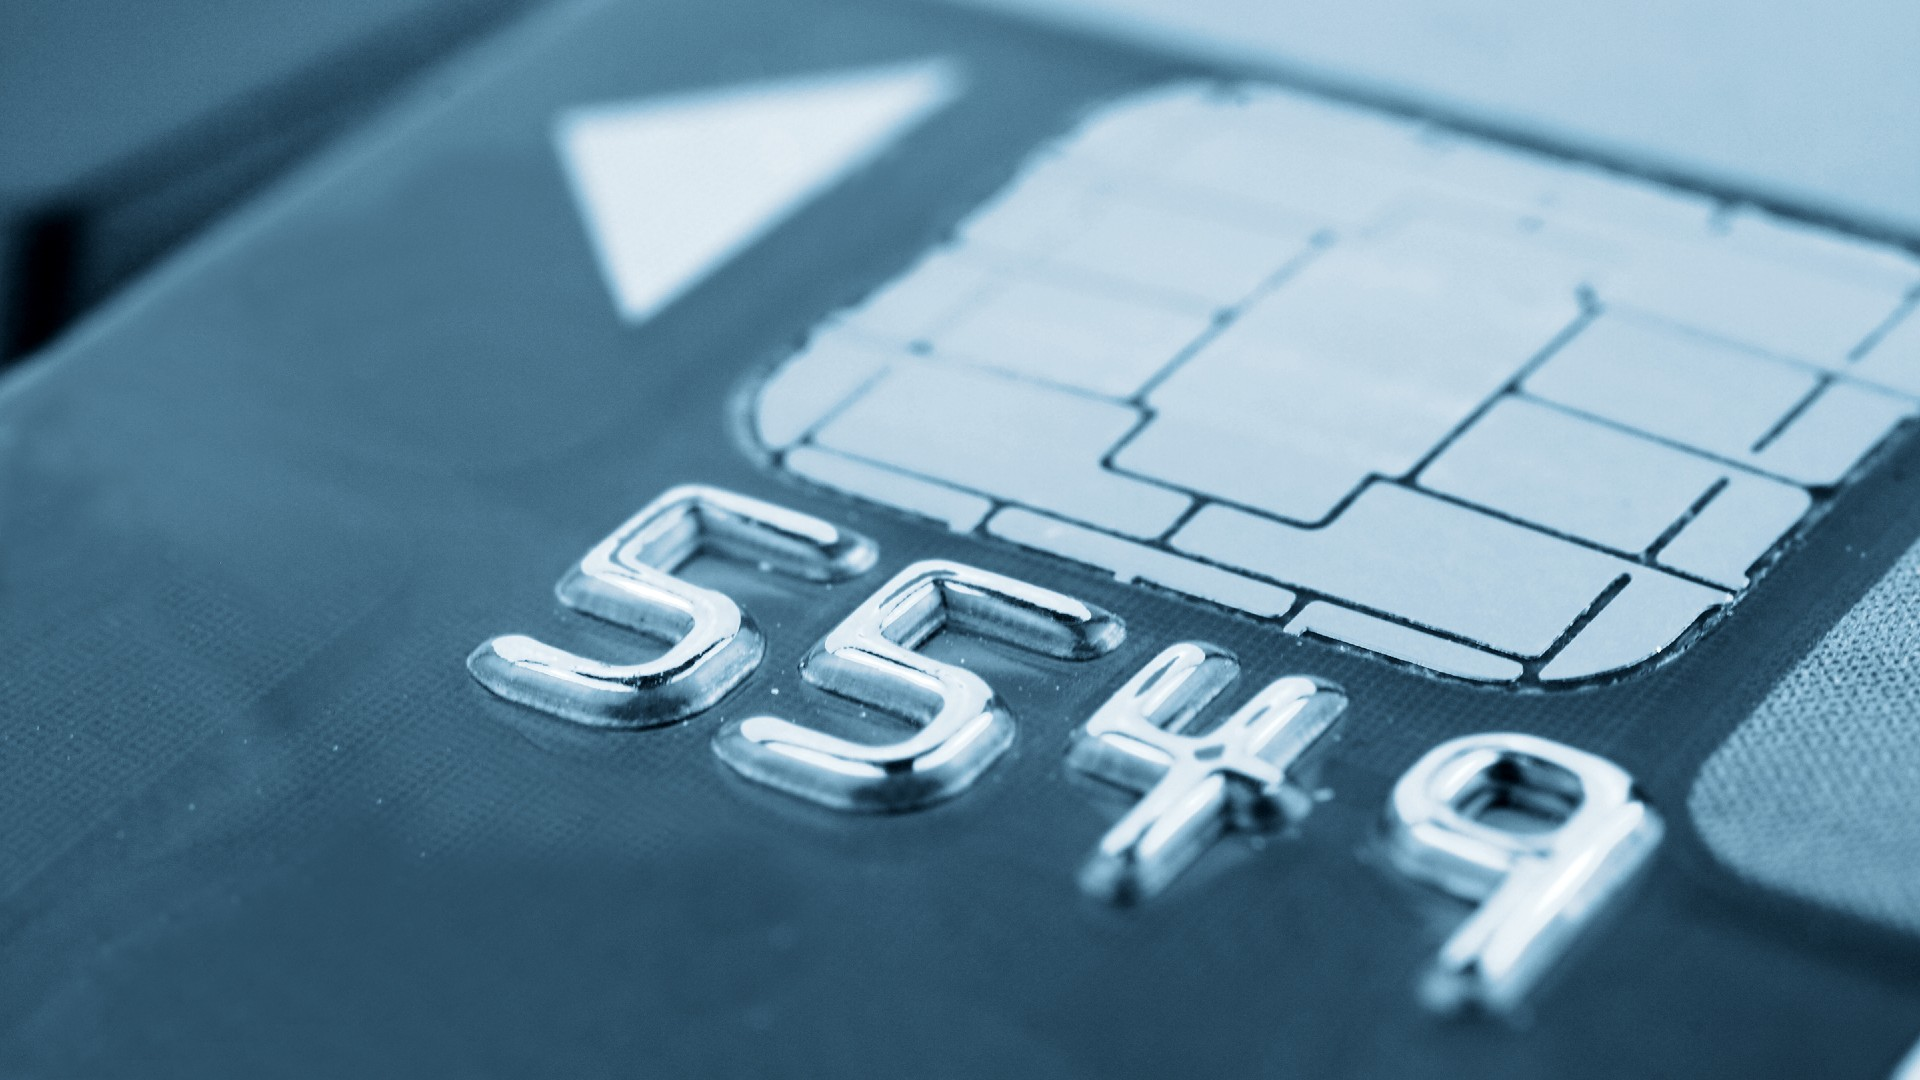 close up of 4 digits on bank card with electronic chip